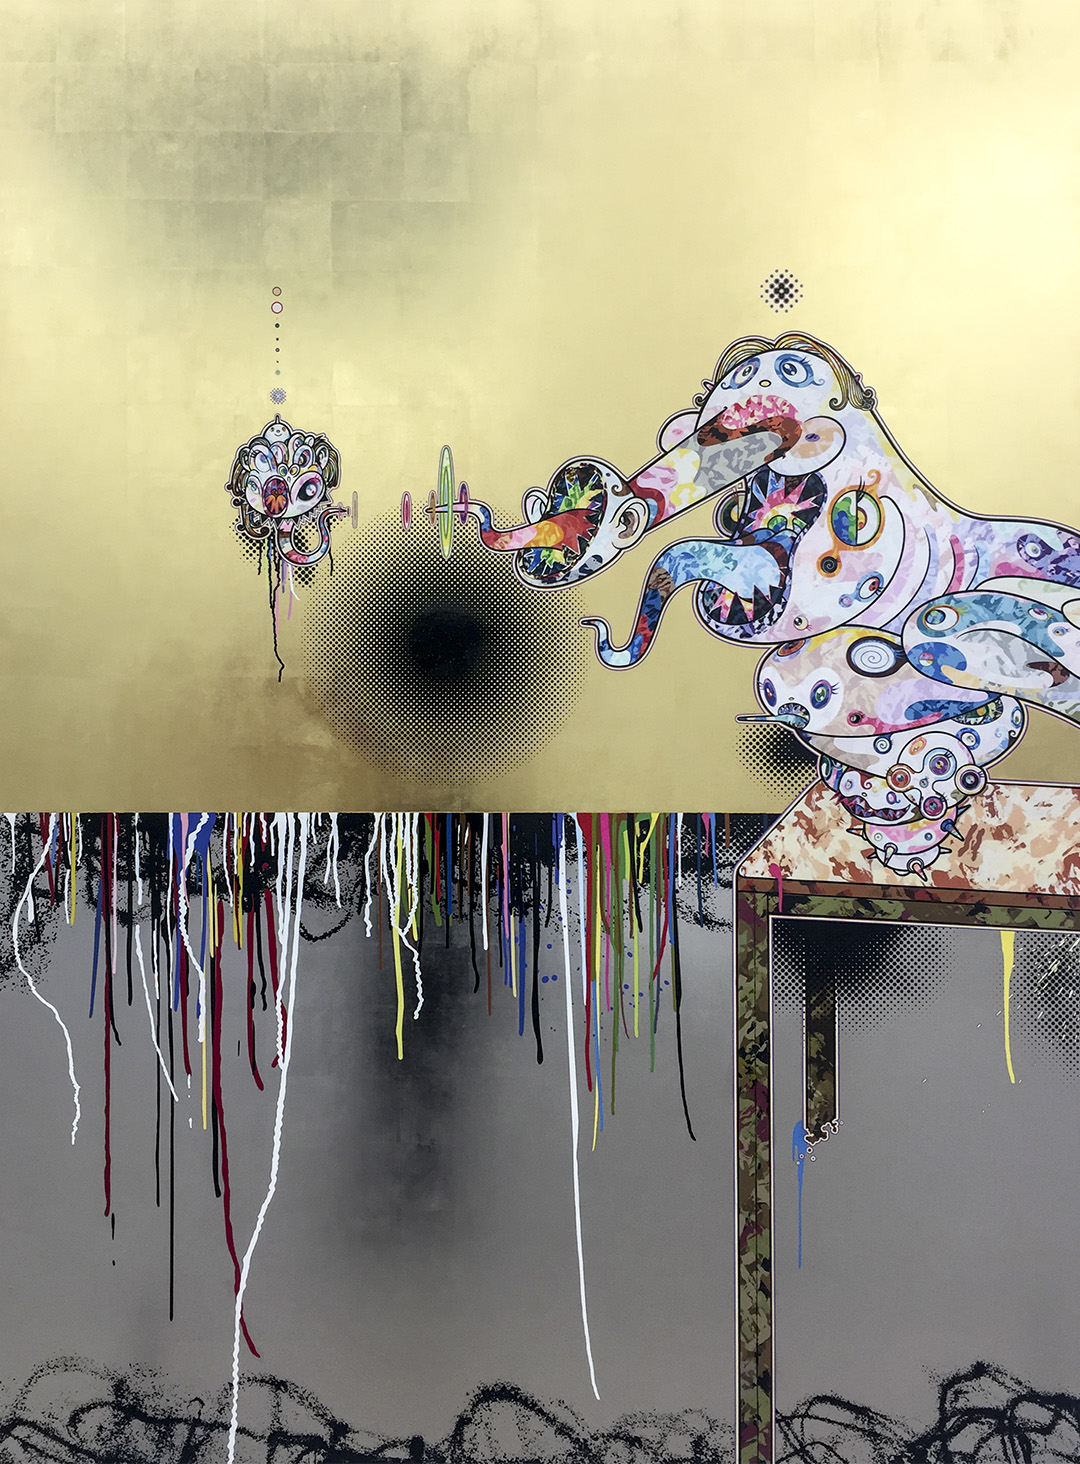 Artist: Takashi Murakami Homage to Francis Bacon (Second Version of Triptych (on light ground)) (2016) Acrylic, gold and platinum leaf on canvas mounted on aluminum frame Triptych (one of three panels) (photo by Megan Lee / Meniscus Magazine)